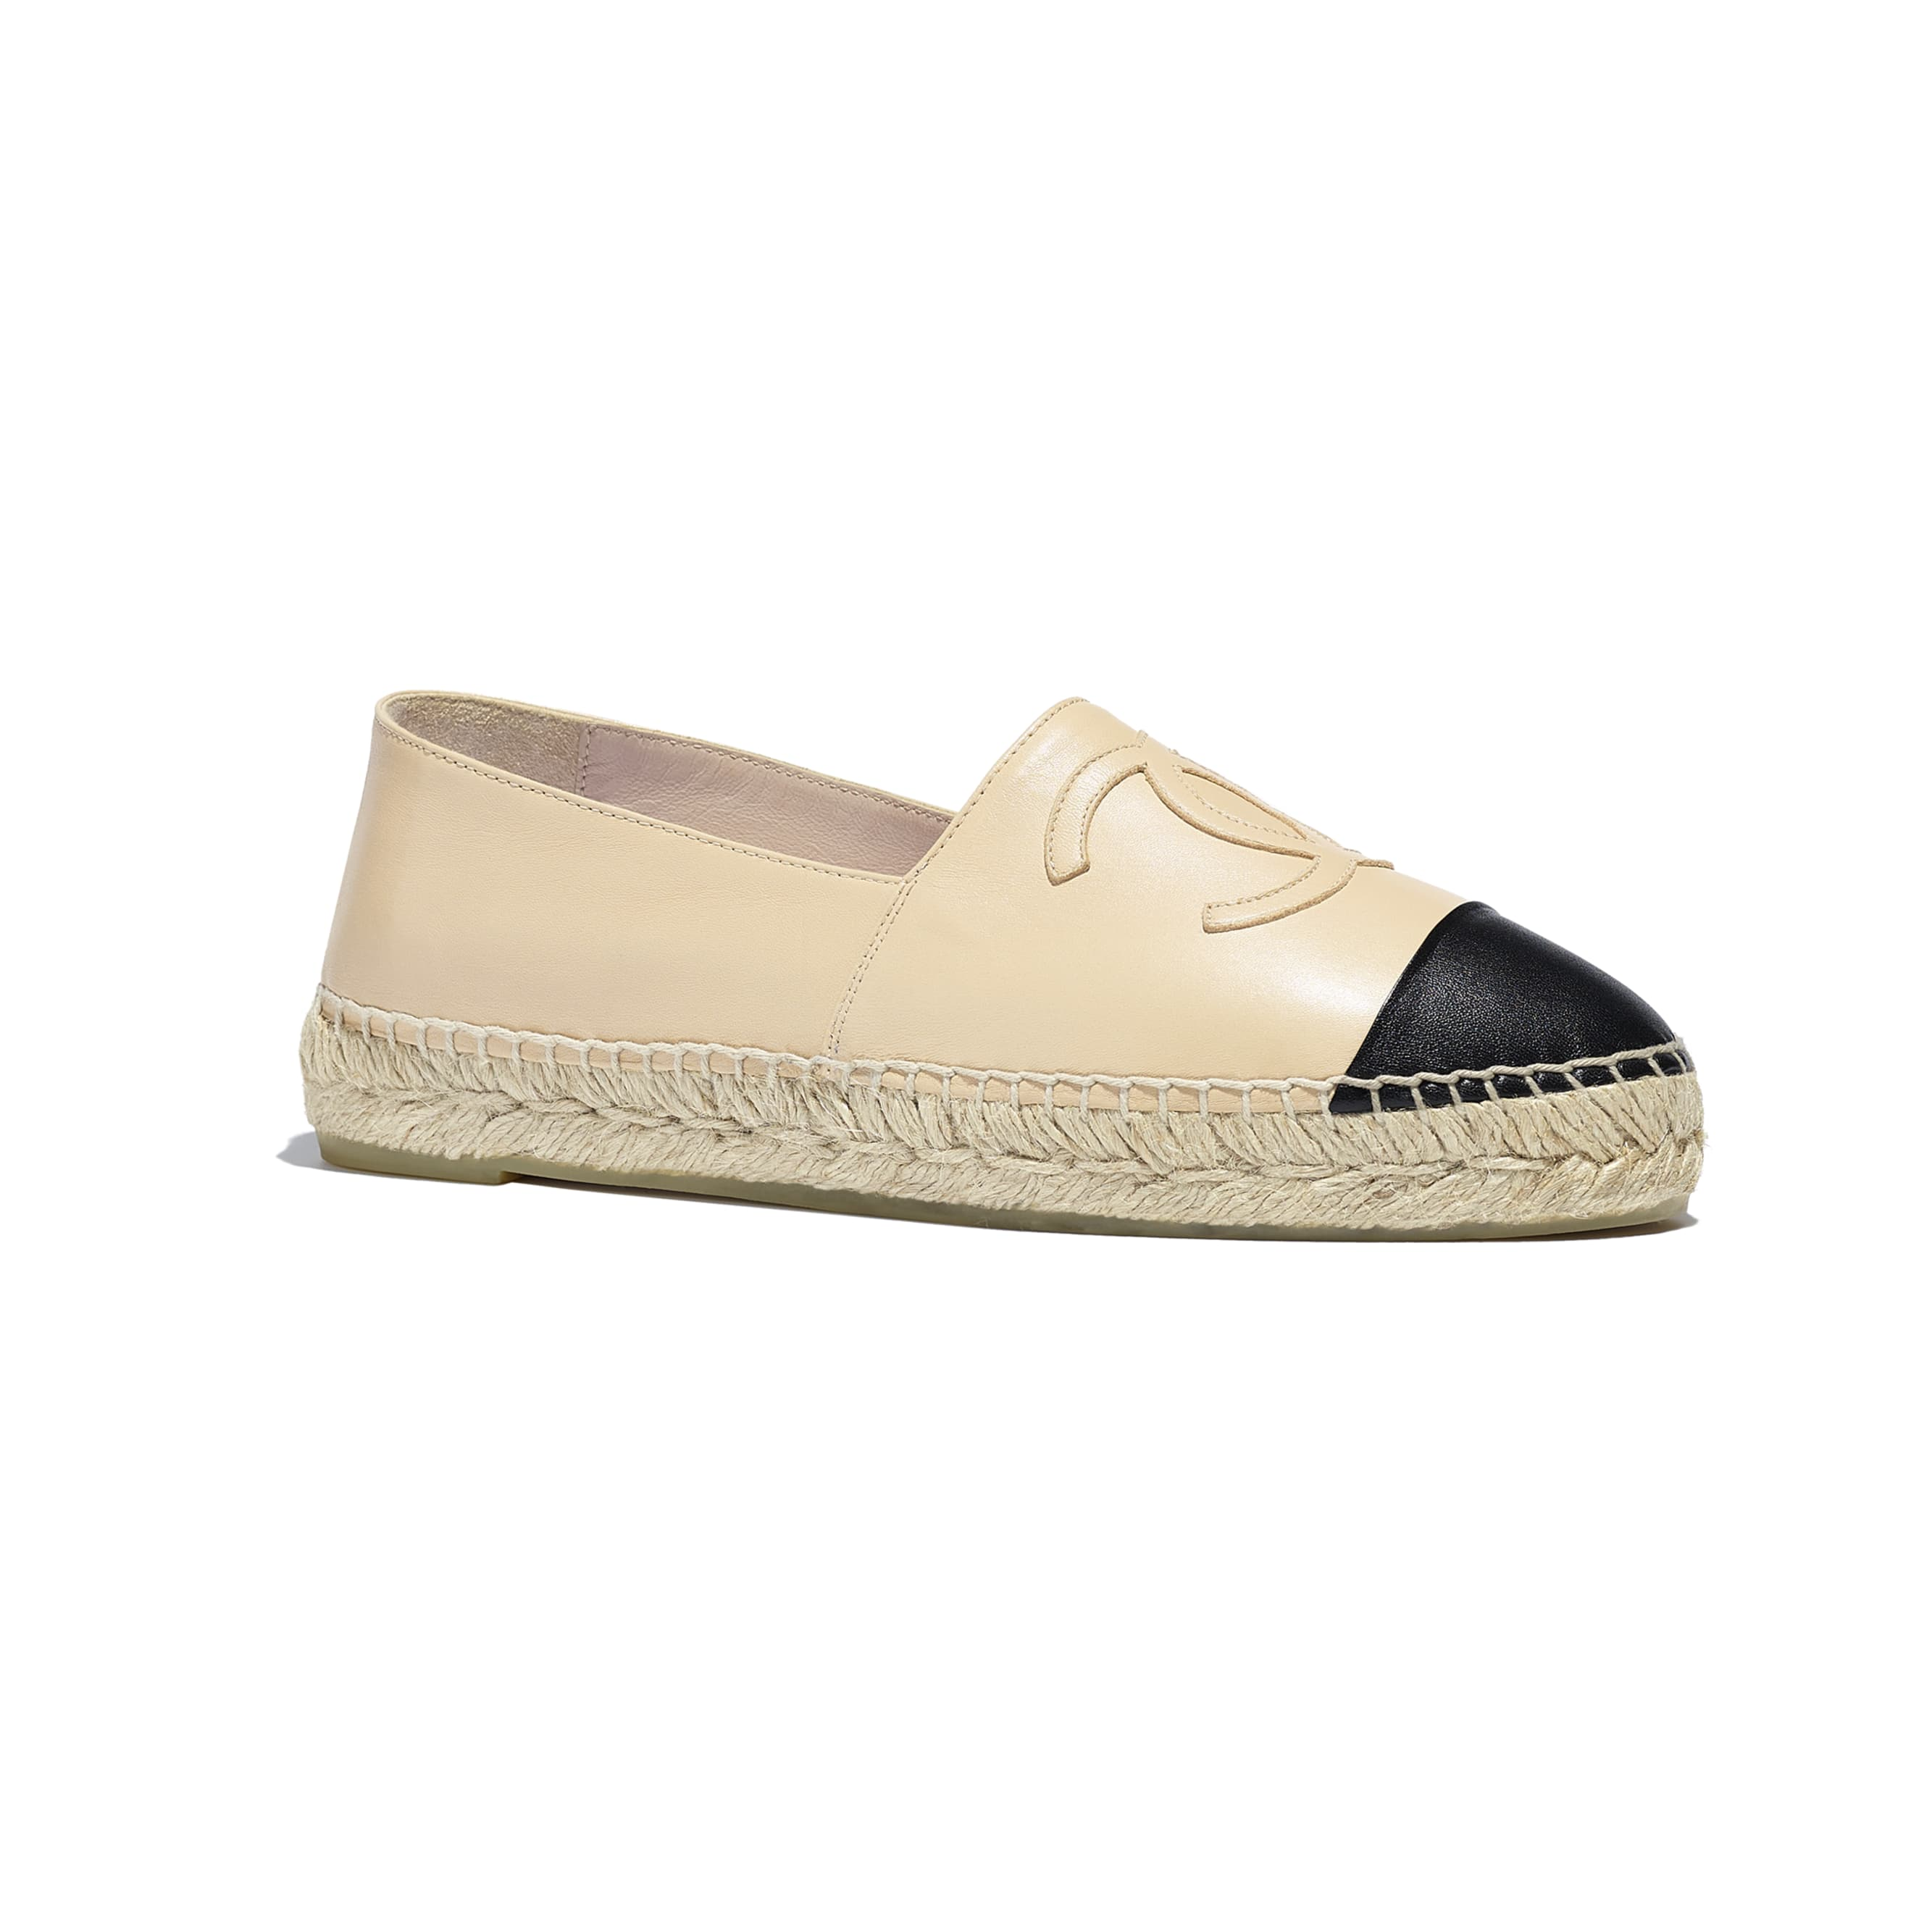 Espadrilles - Beige & Black - Lambskin - CHANEL - Alternative view - see standard sized version